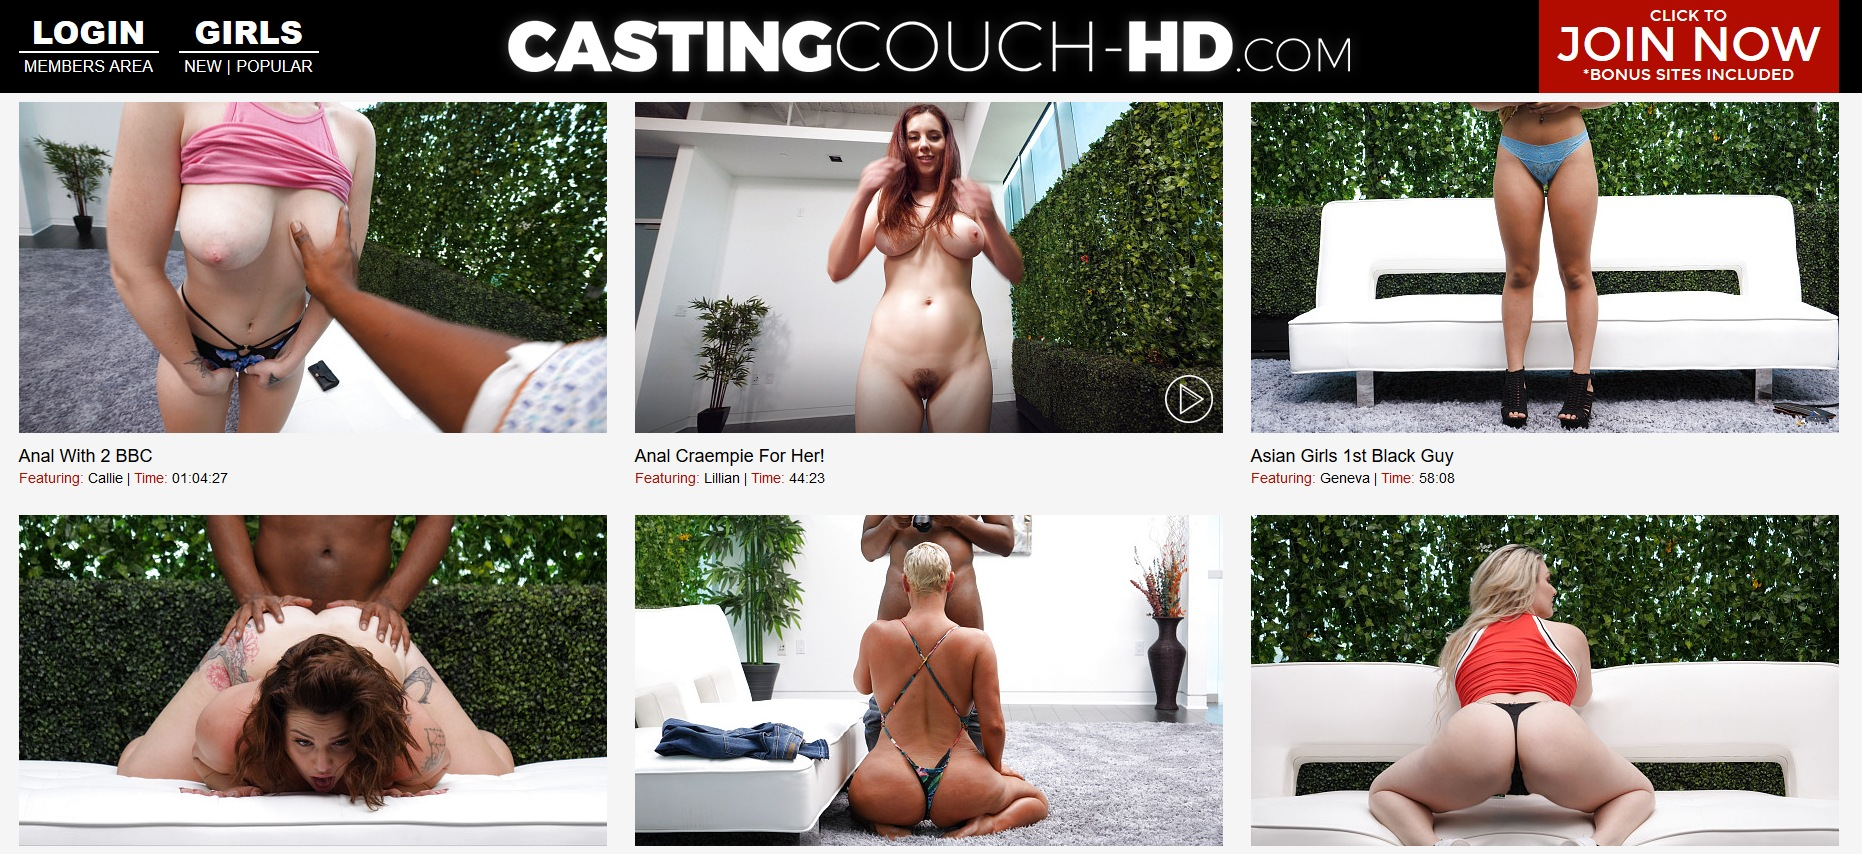 https://piratepass.pw/wp-content/uploads/2019/02/castingcouch-hd.com-ywcSbsAmvUjjpWrkatEKfqQw.jpg pass